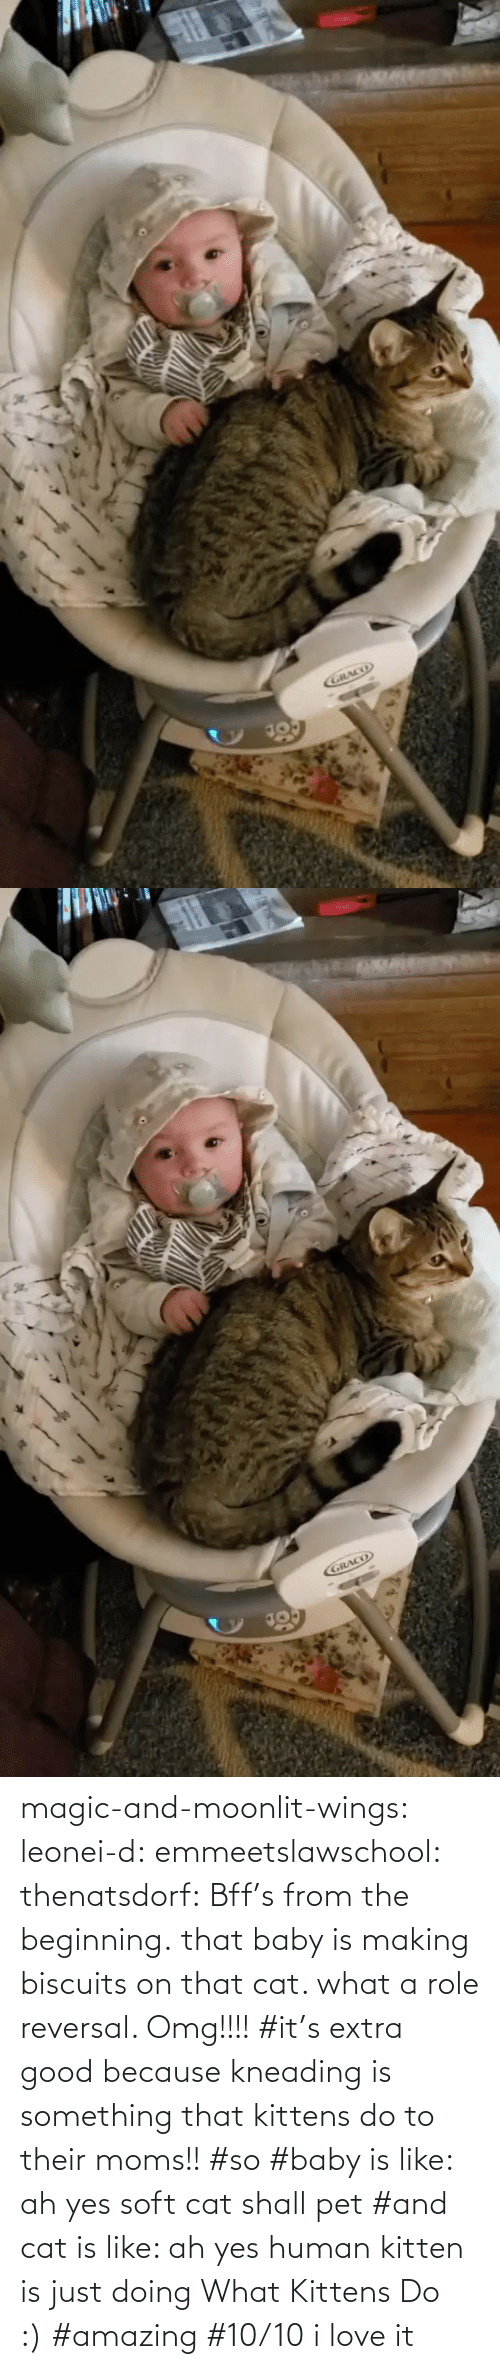 Kittens: magic-and-moonlit-wings: leonei-d:  emmeetslawschool:  thenatsdorf: Bff's from the beginning. that baby is making biscuits on that cat. what a role reversal.    Omg!!!!     #it's extra good because kneading is something that kittens do to their moms!! #so #baby is like: ah yes soft cat shall pet #and cat is like: ah yes human kitten is just doing What Kittens Do :) #amazing #10/10 i love it